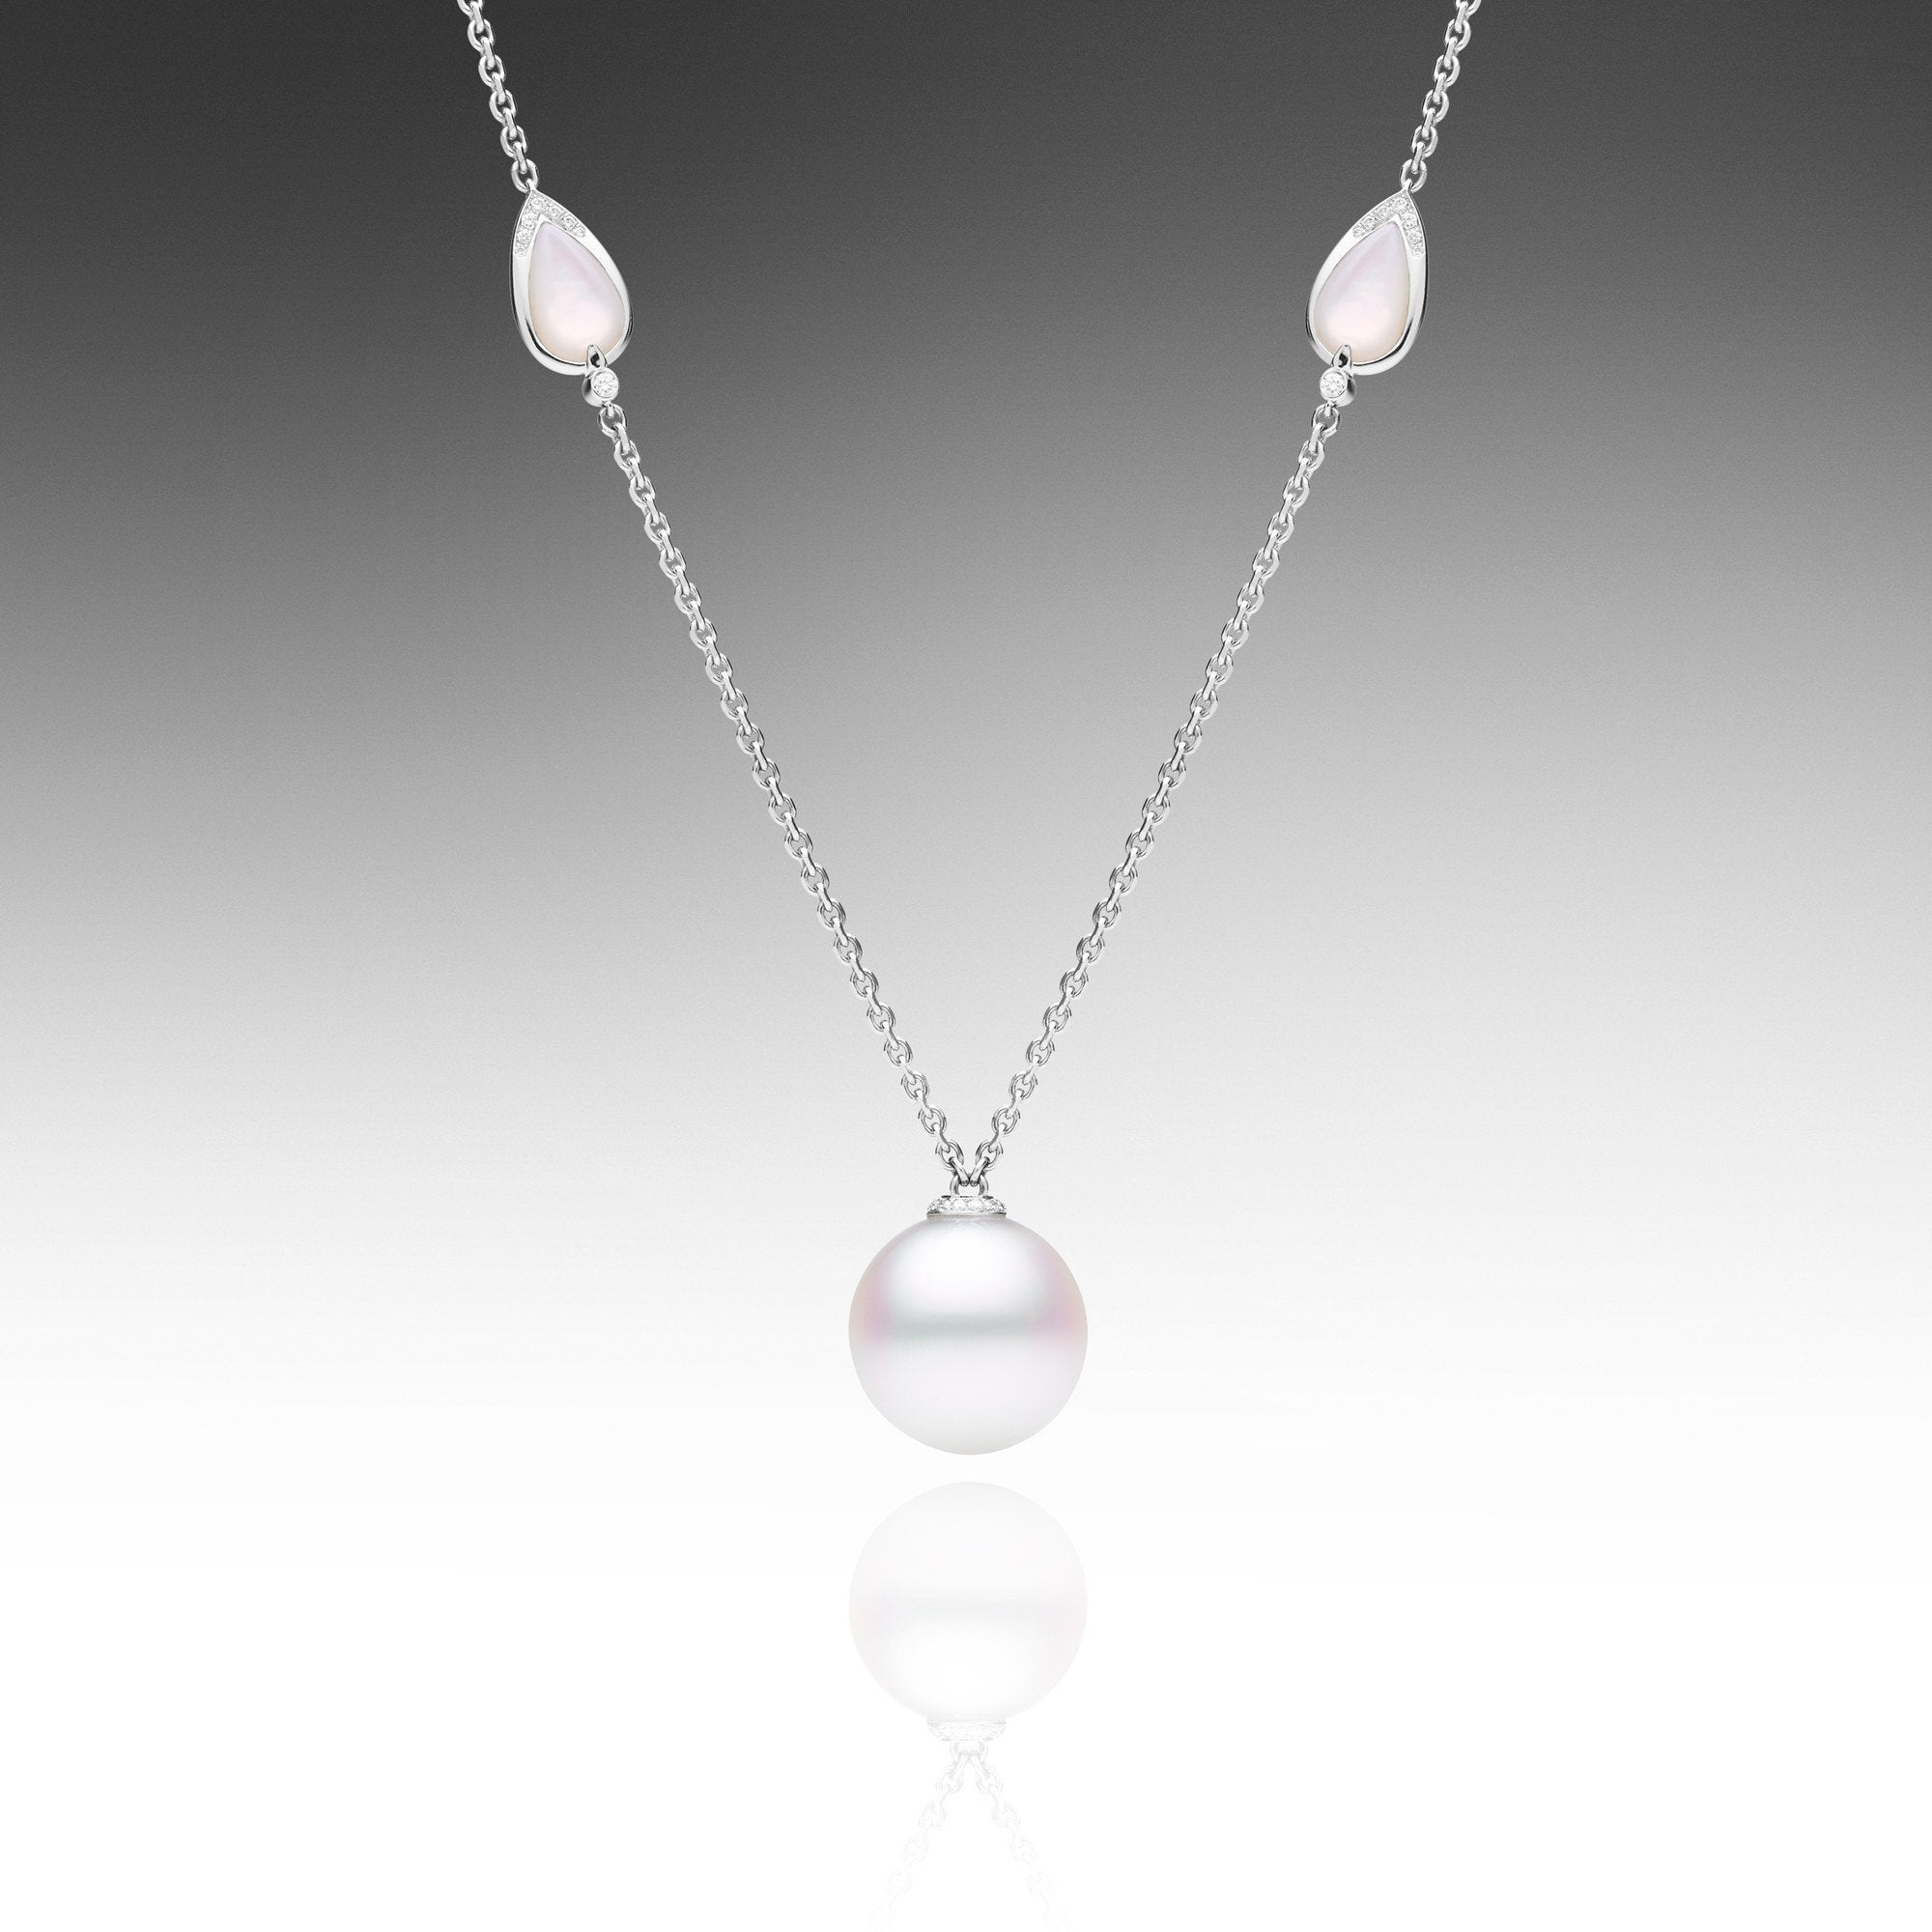 single pendant collections genuine certified pearl aaa paradise mm and collection guaranteed harmony pendants akoya